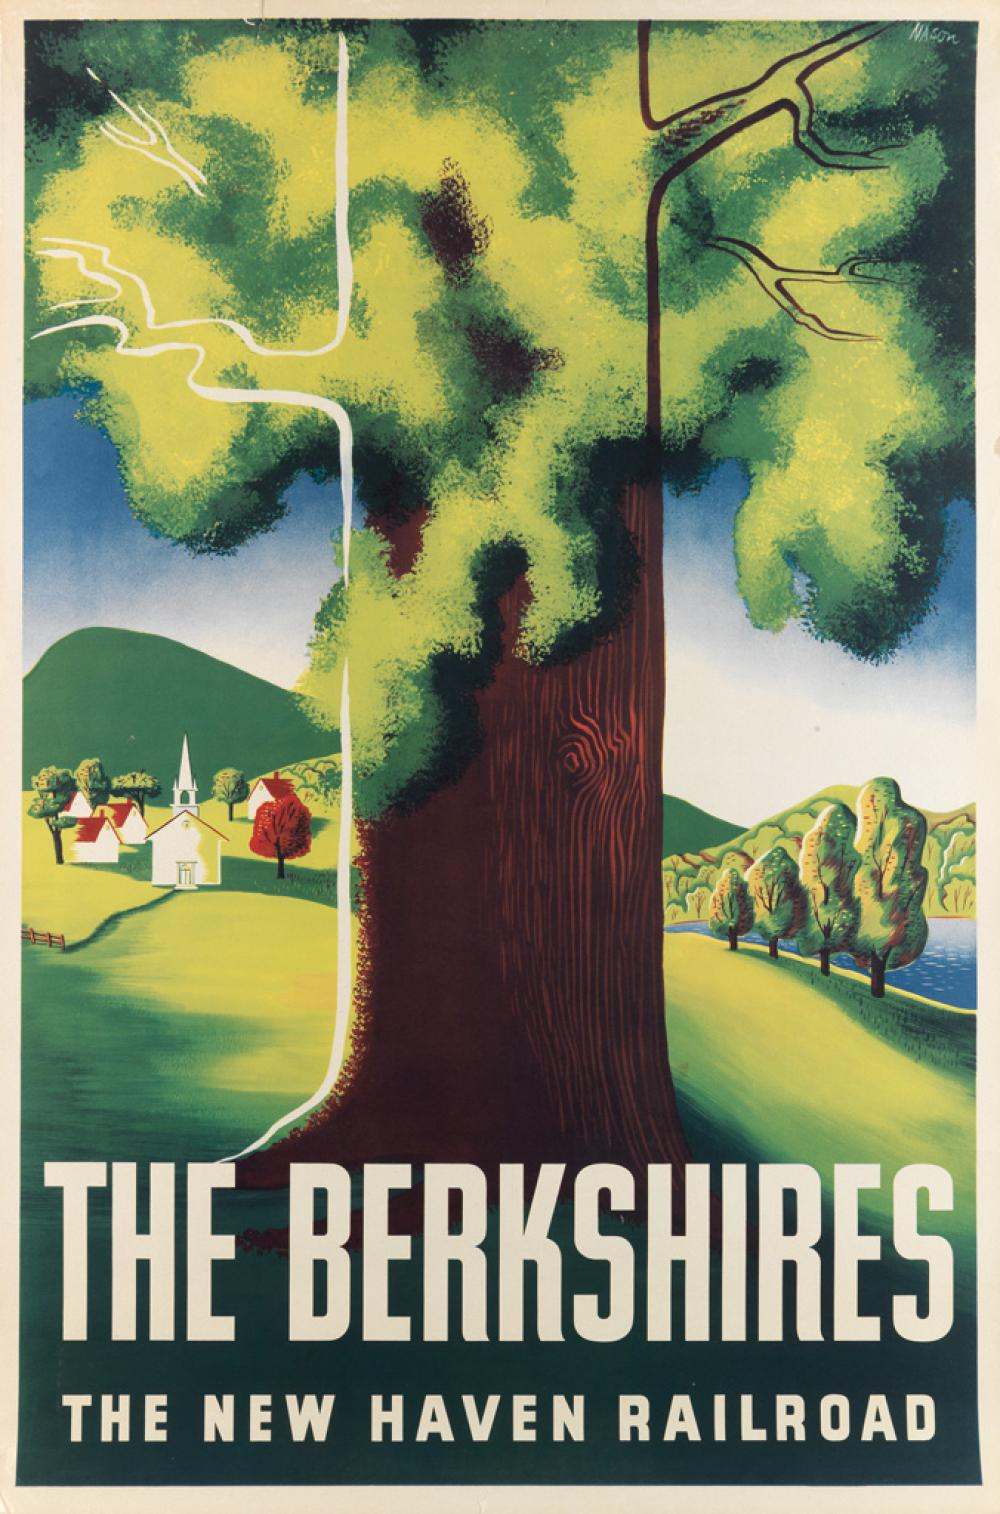 BEN NASON (1915-?). THE BERKSHIRES / THE NEW HAVEN RAILROAD. 1942. 42x28 inches, 106x71 cm.